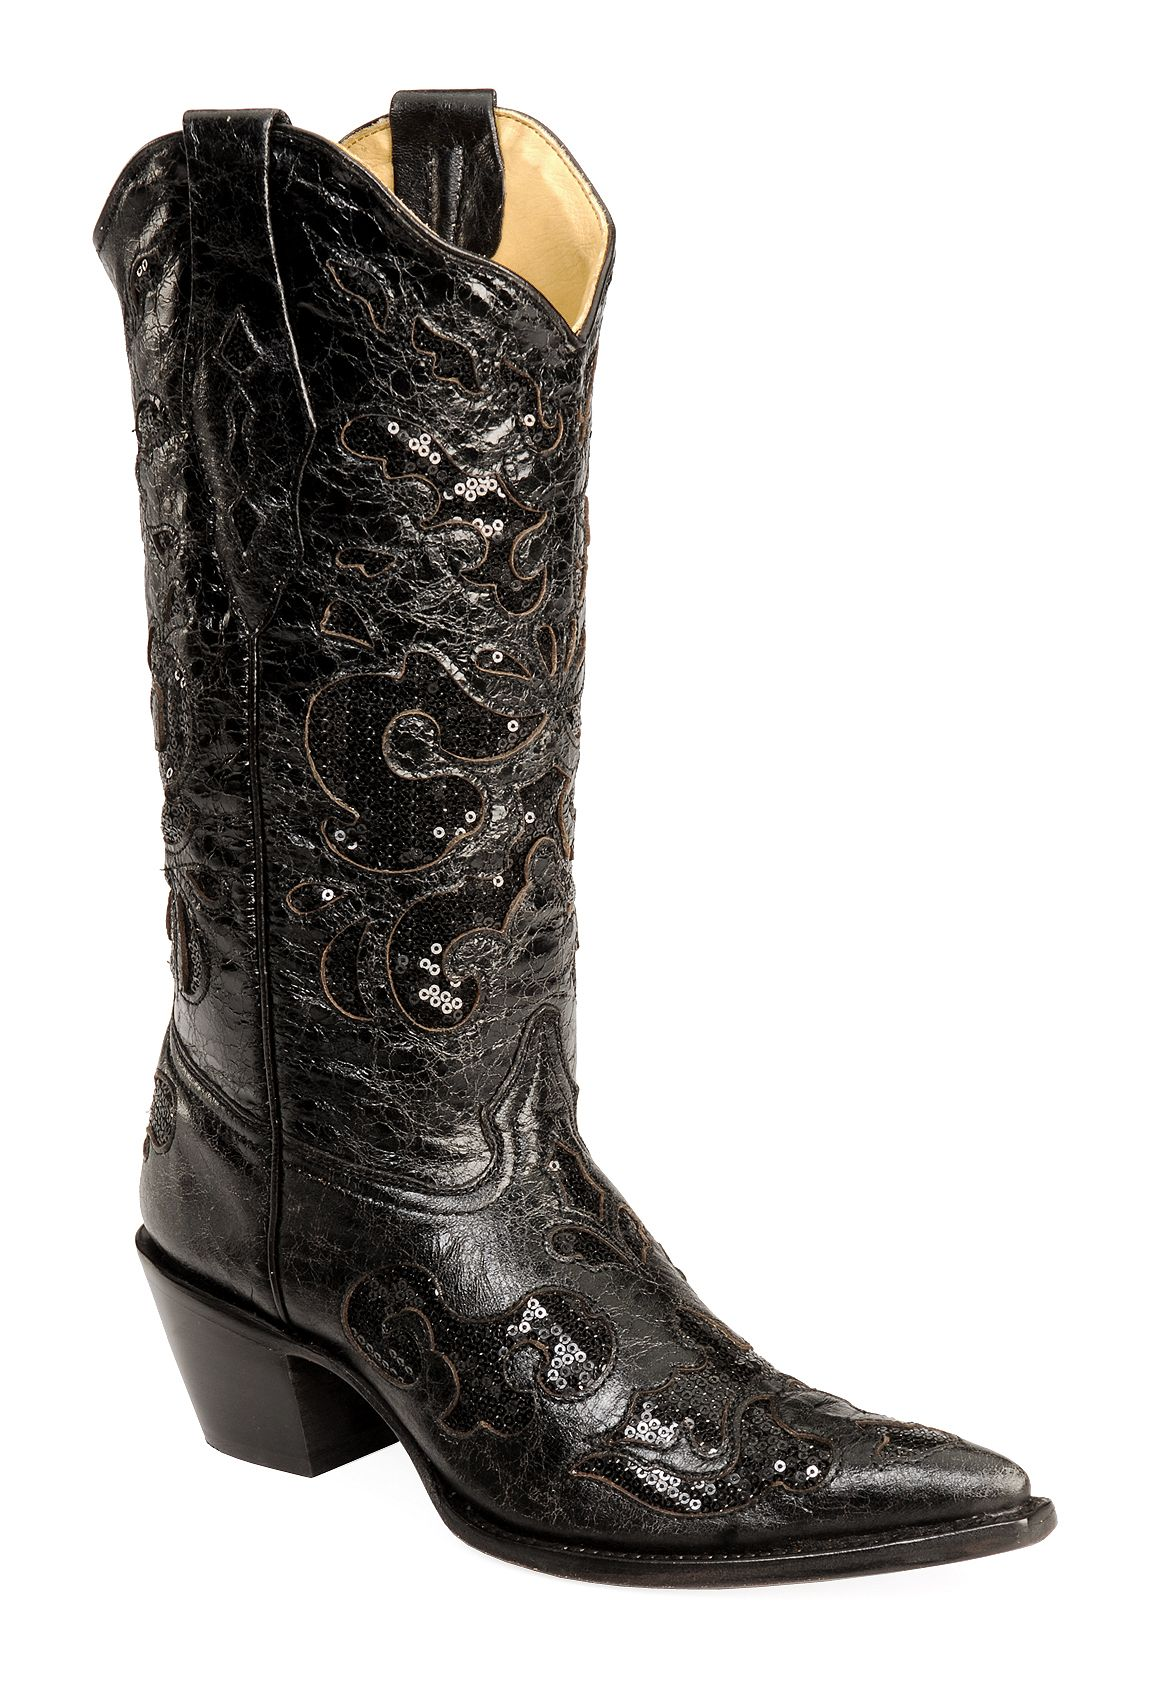 Corral Sequin Inlay Cowgirl Boots Pointed Toe Sheplers